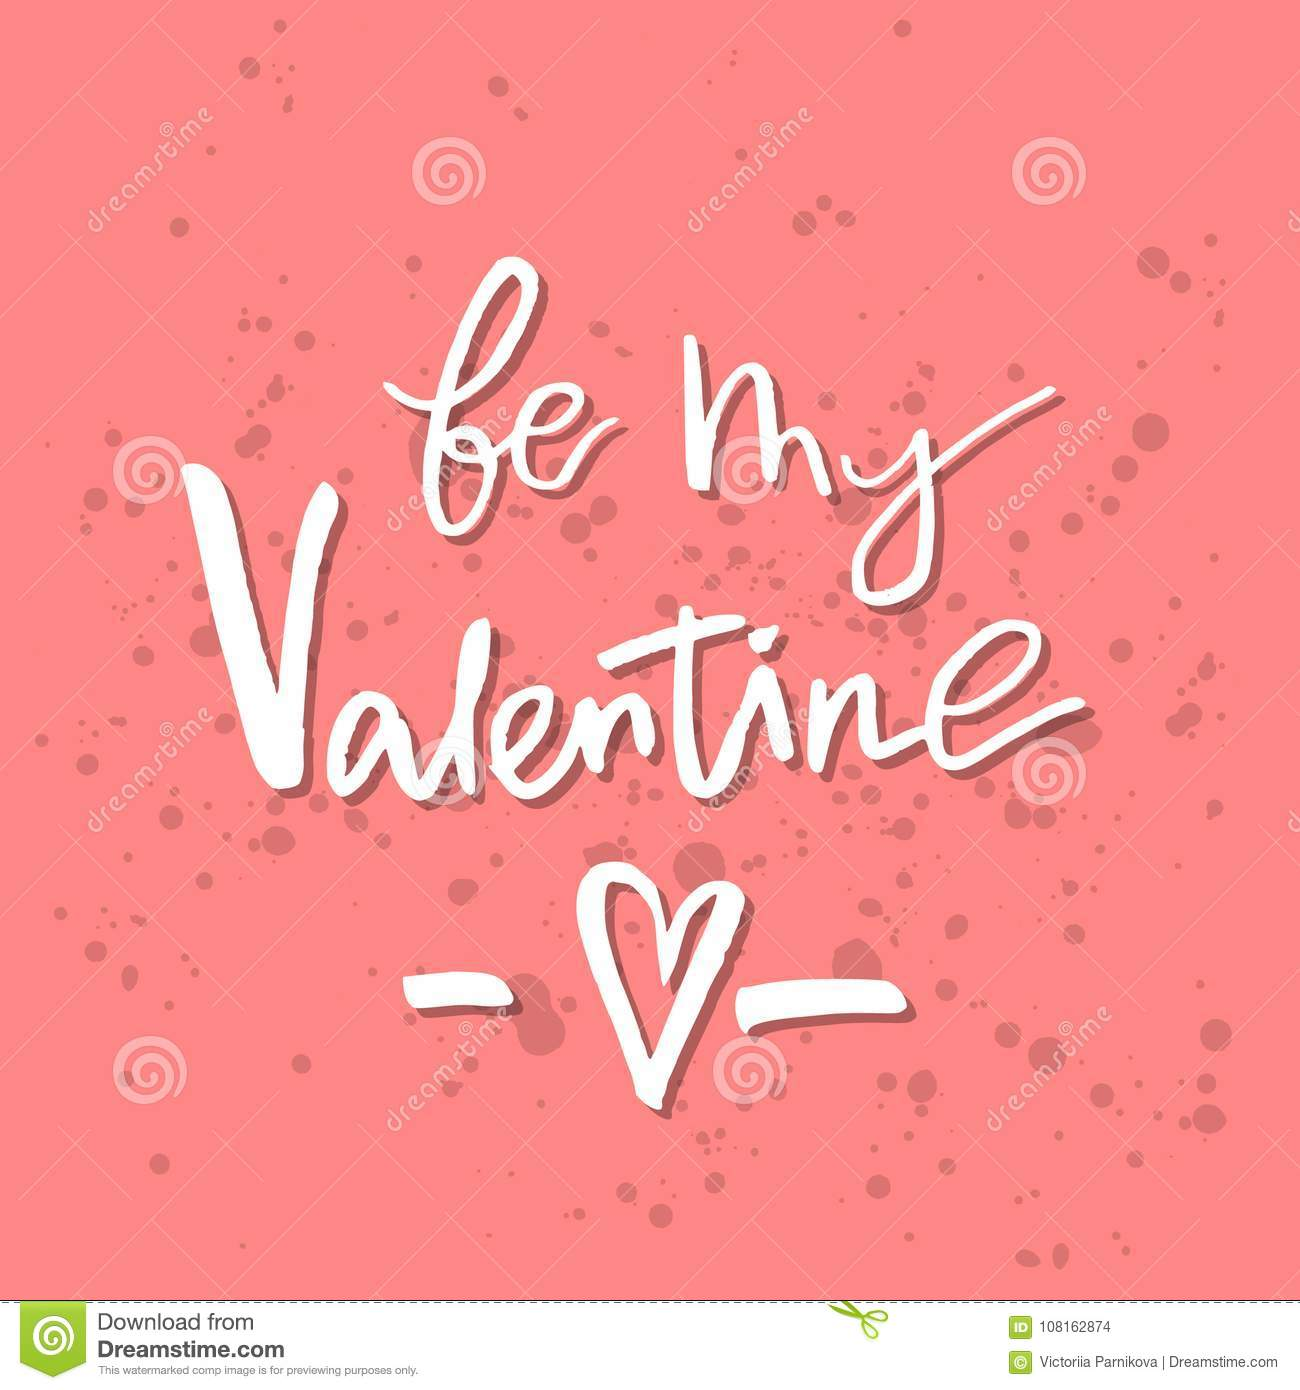 Will you be my valentine inspirational valentines day romantic will you be my valentine inspirational valentines day romantic kristyandbryce Choice Image